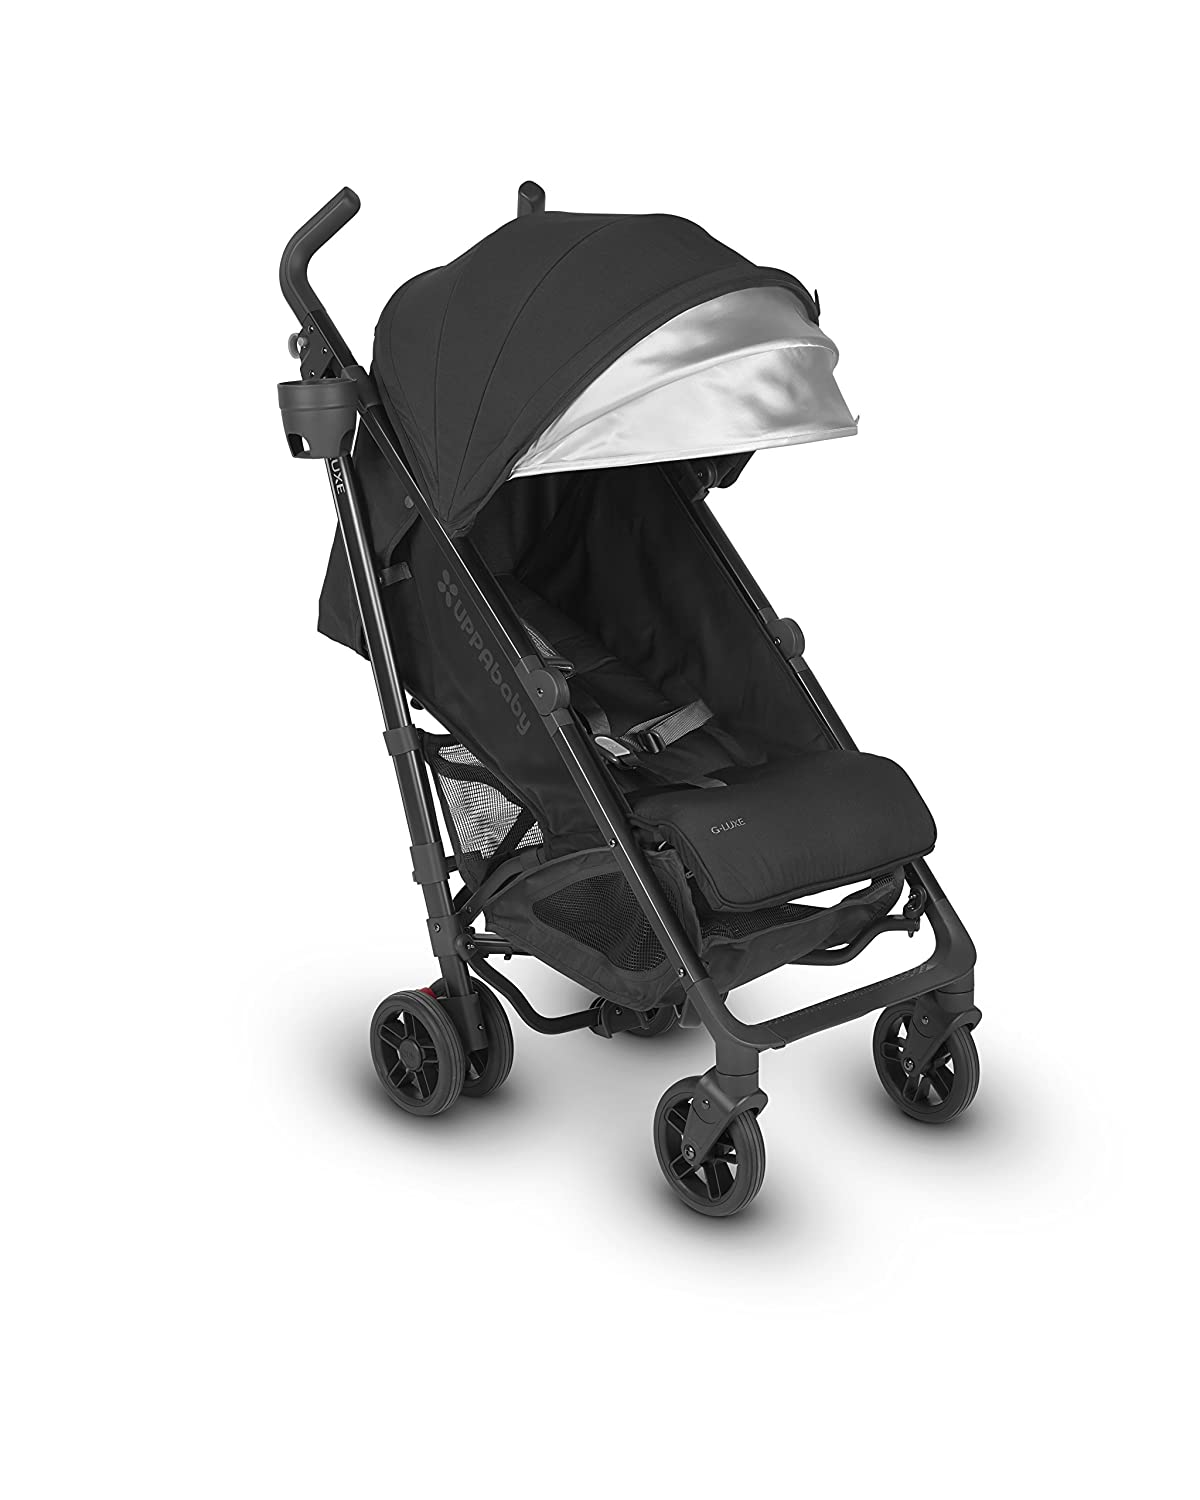 2018 UPPAbaby G-LUXE Stroller -Jake (Black) 812mwPsmI-L